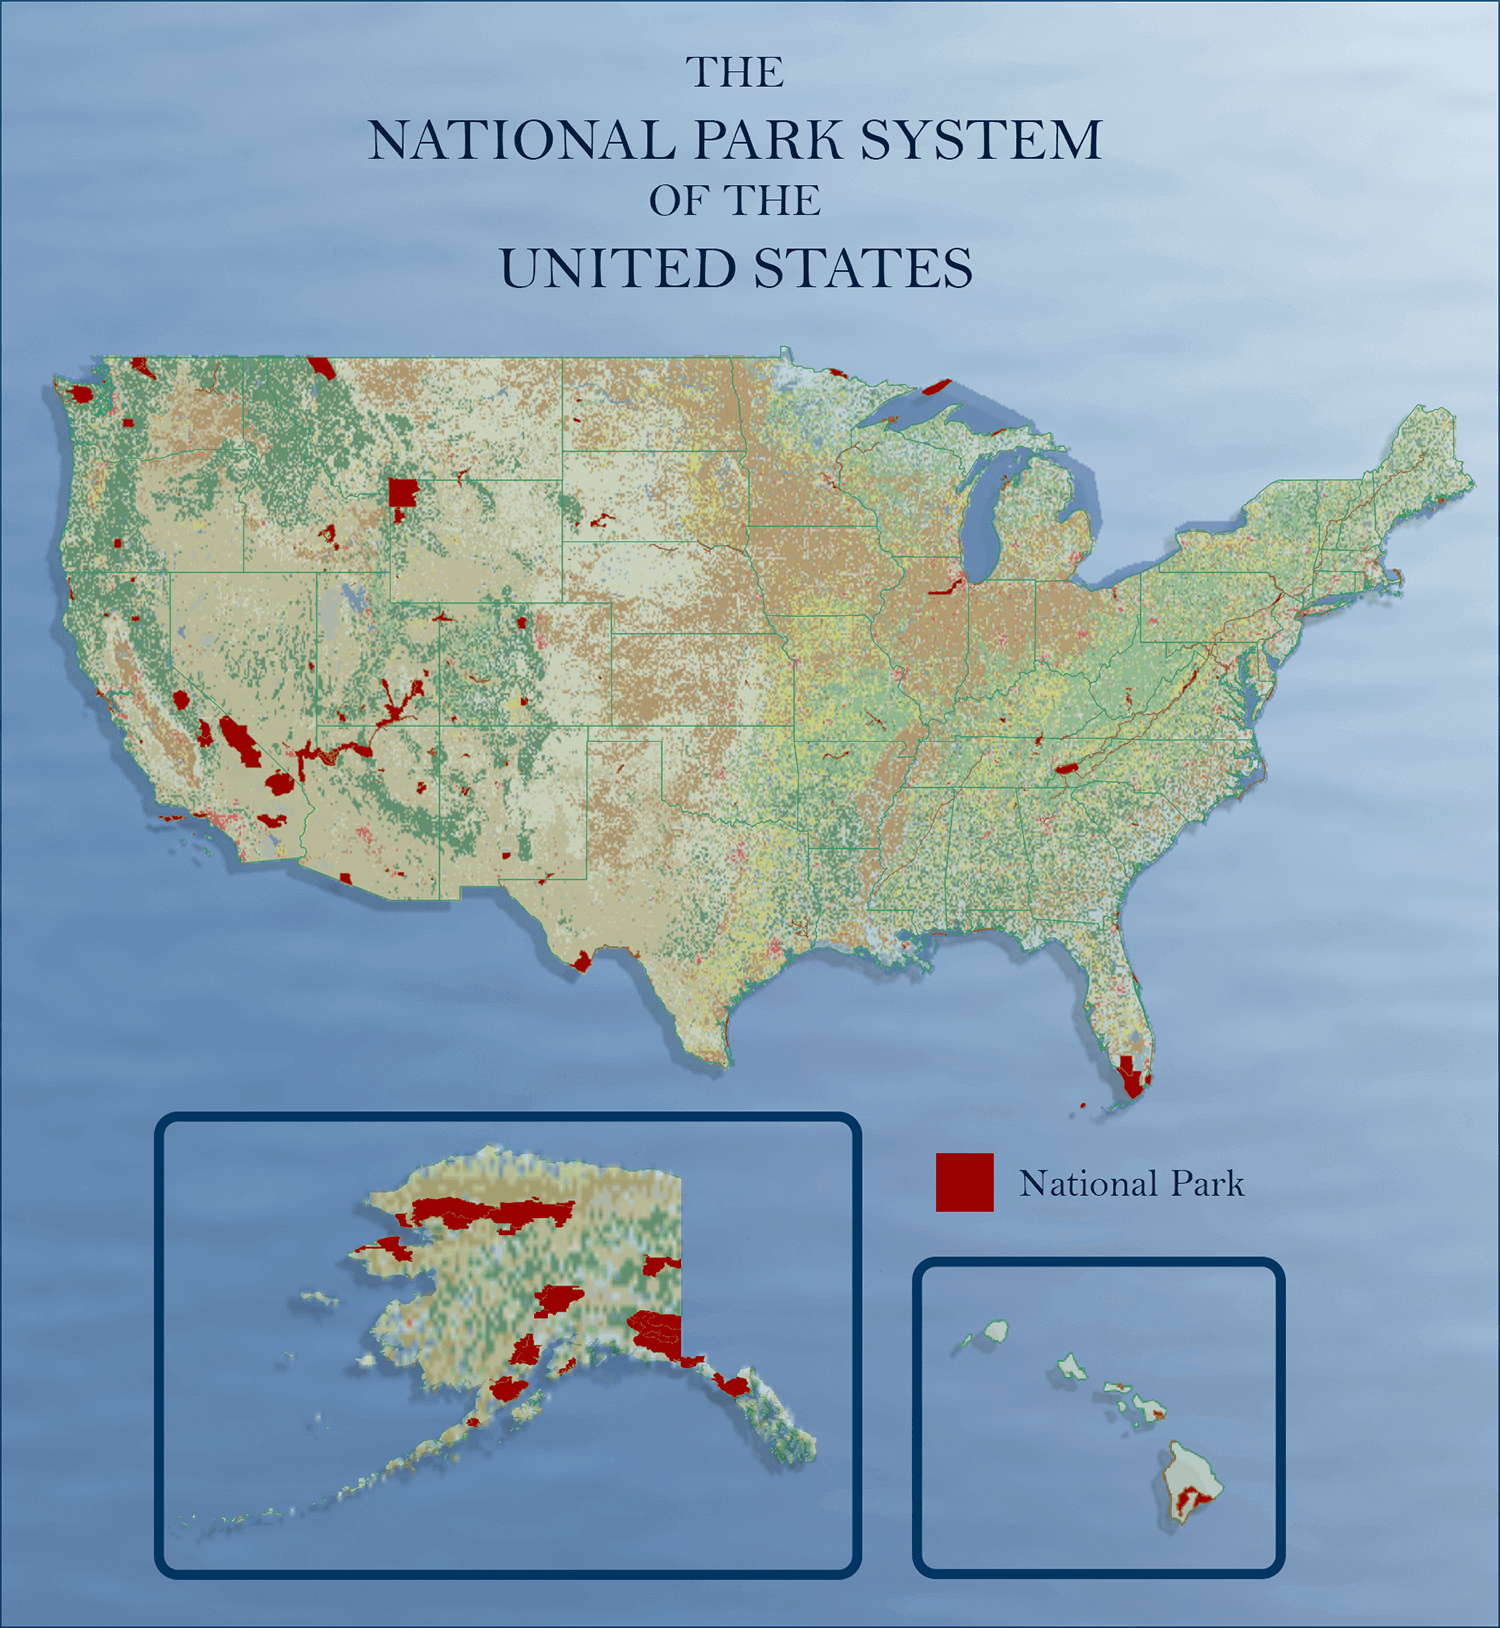 Surfer mapping software: Map of the US National Park boundaries